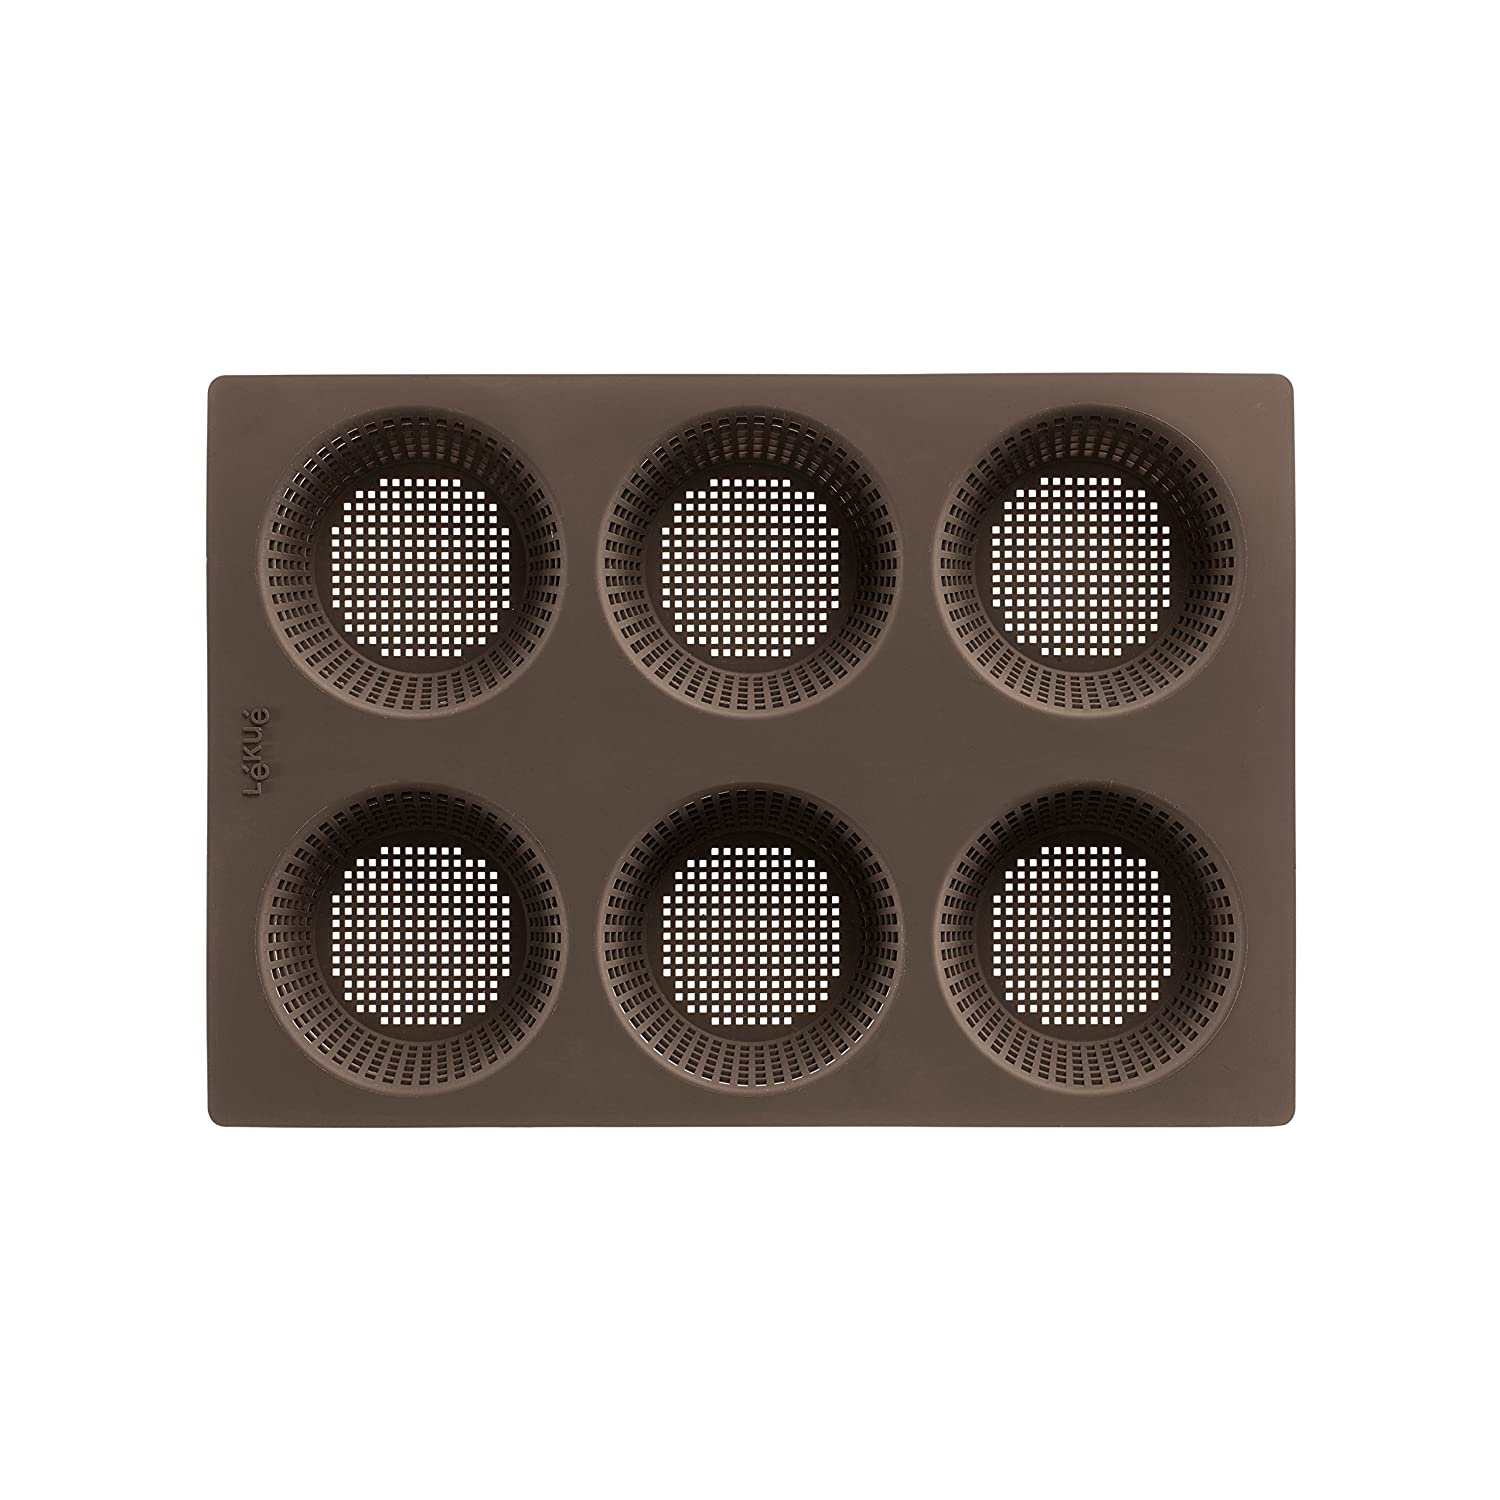 Amazon.com: Lekue 6 Cavity Micro Perforated Round Roll Baking Pan, Brown: Kitchen & Dining